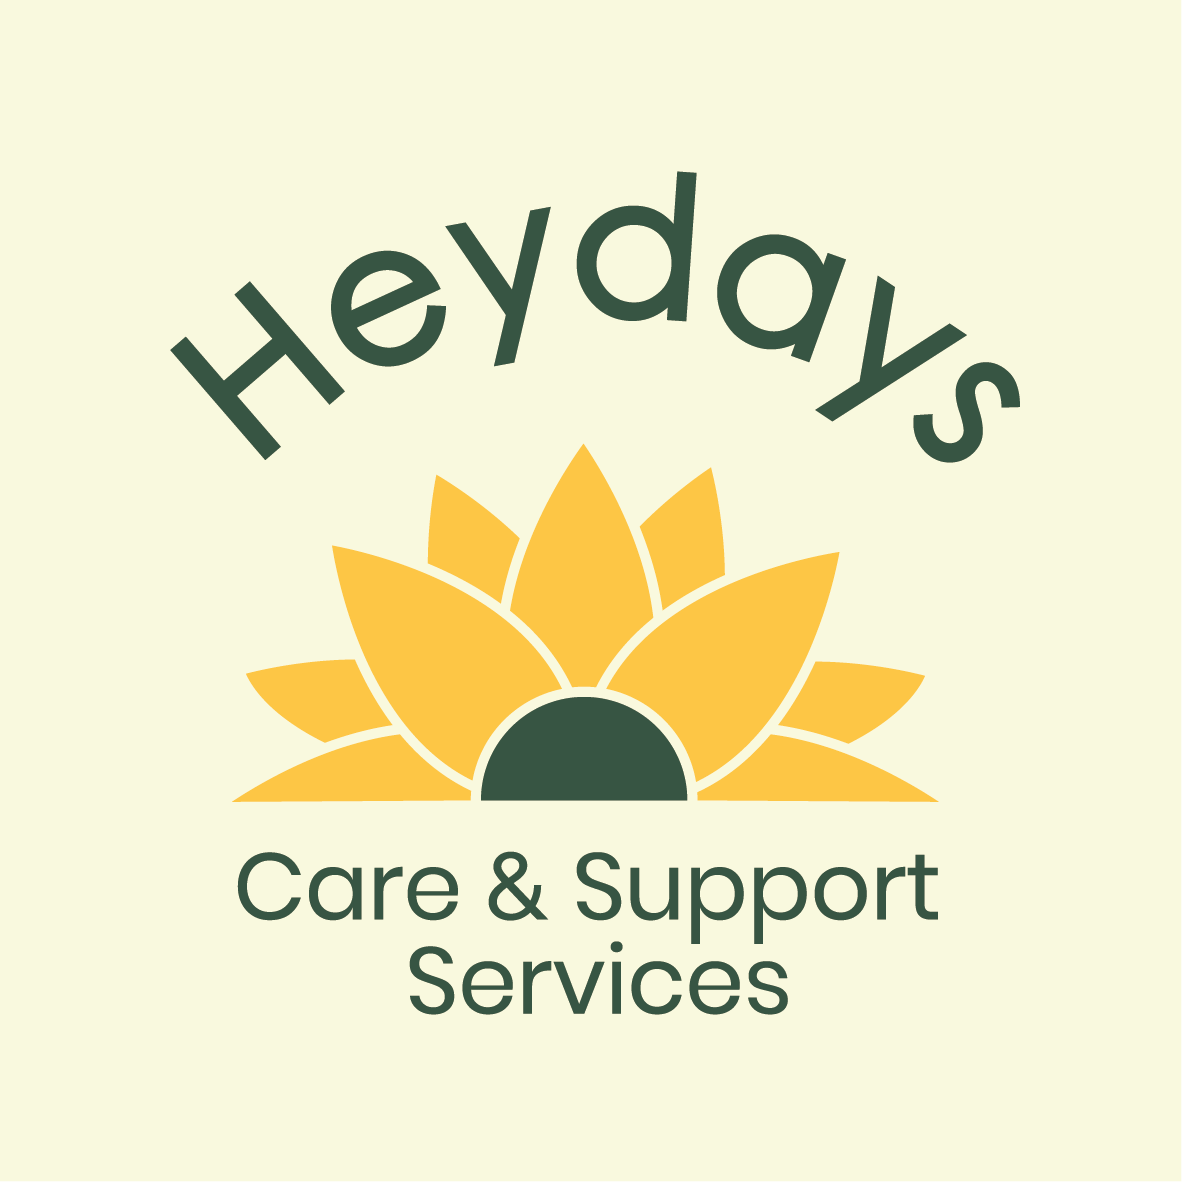 Heydays Care & Support Services